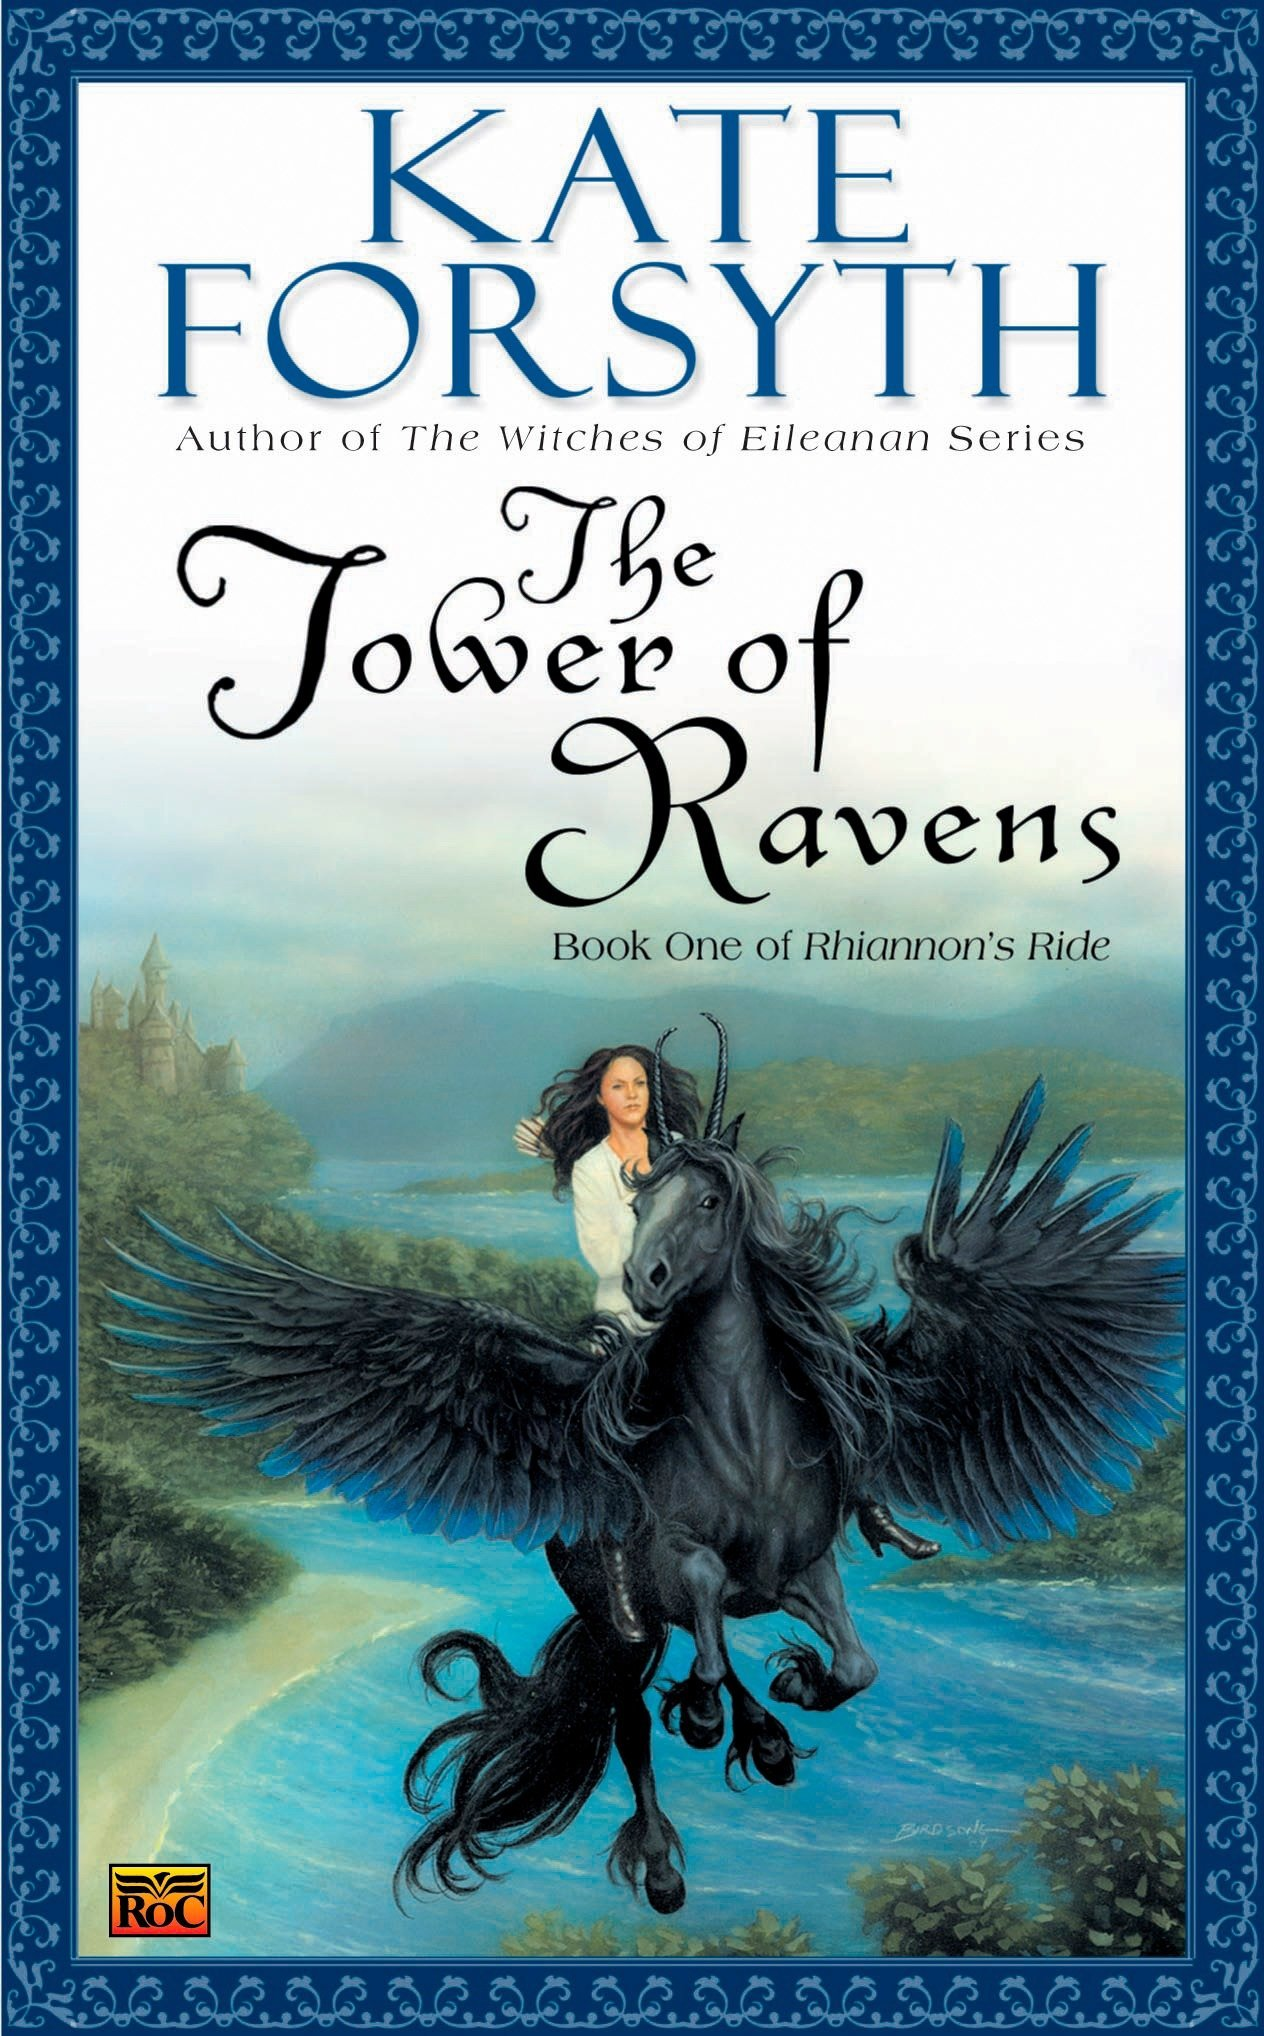 The Tower of Ravens: Book One of Rhiannon's Ride ePub fb2 ebook